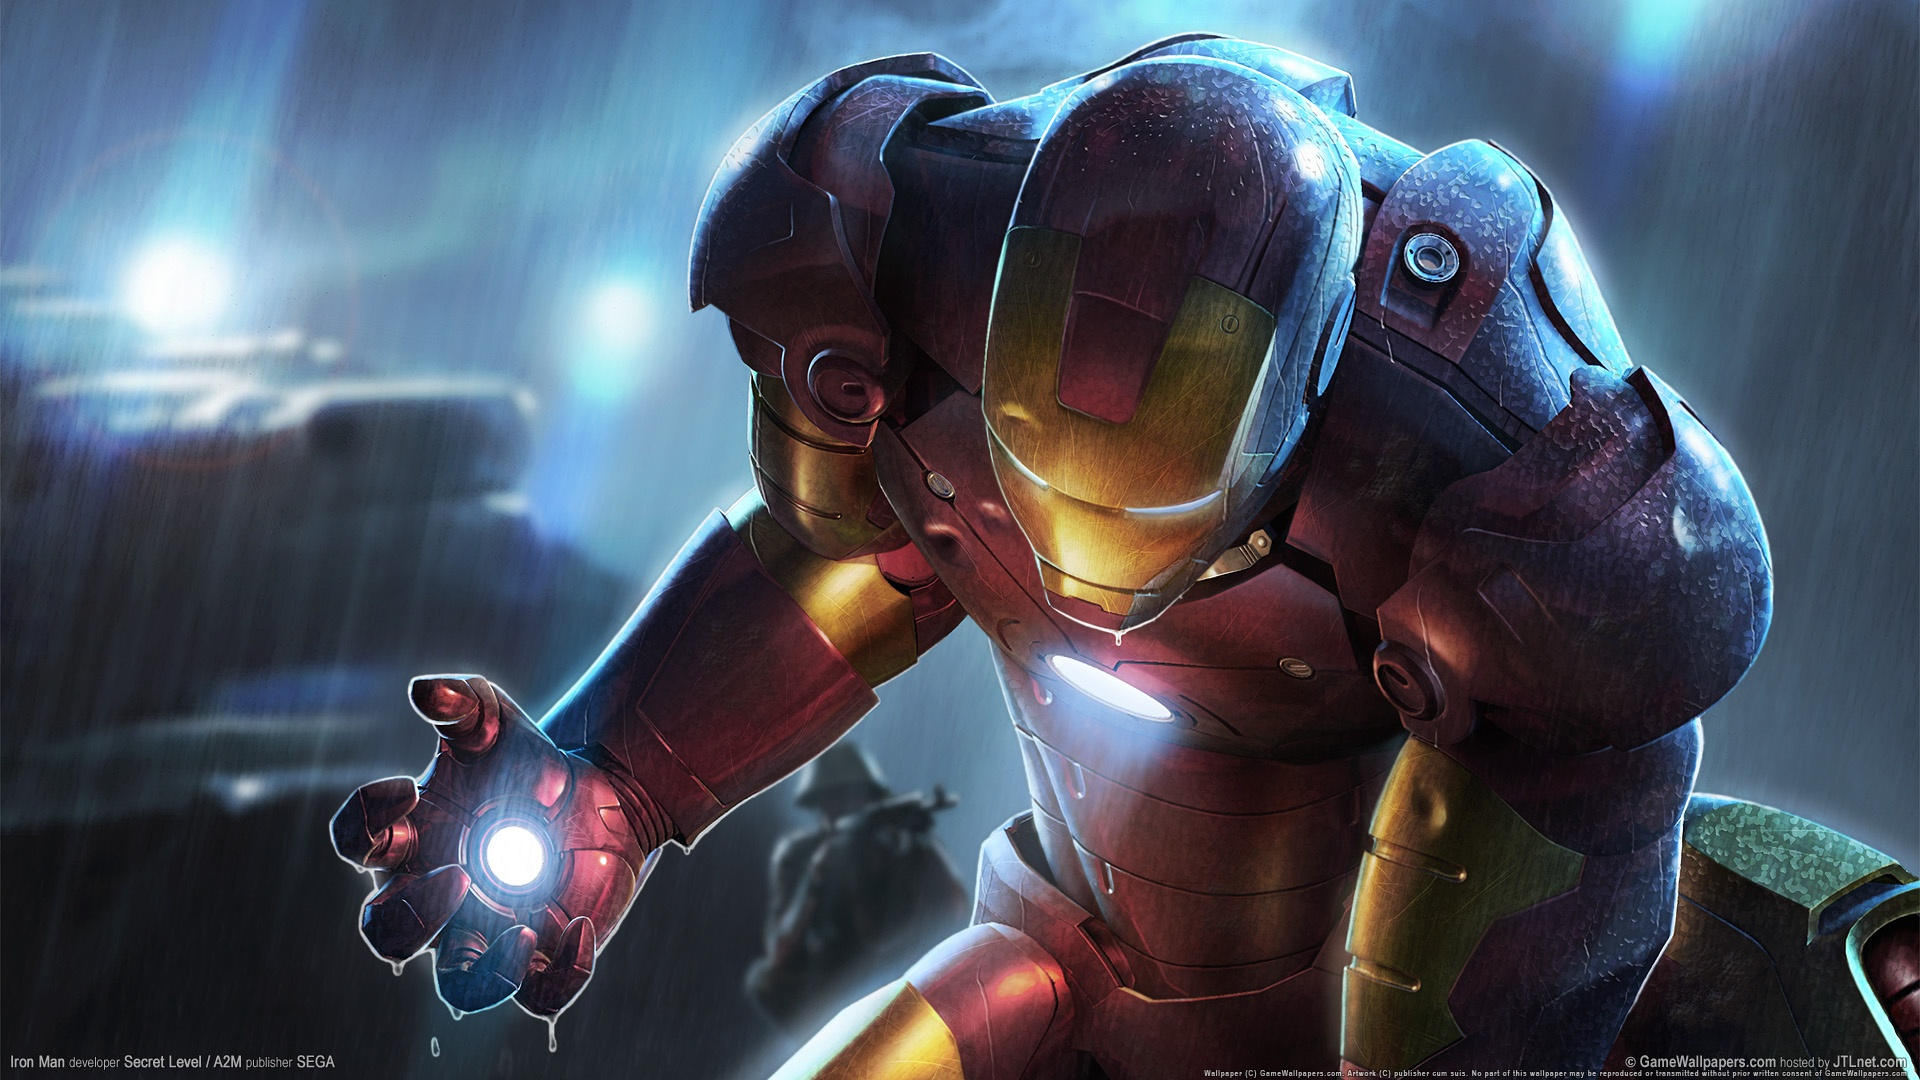 iron man wallpaper background screensaver wallpapers picture 1920x1080 1920x1080